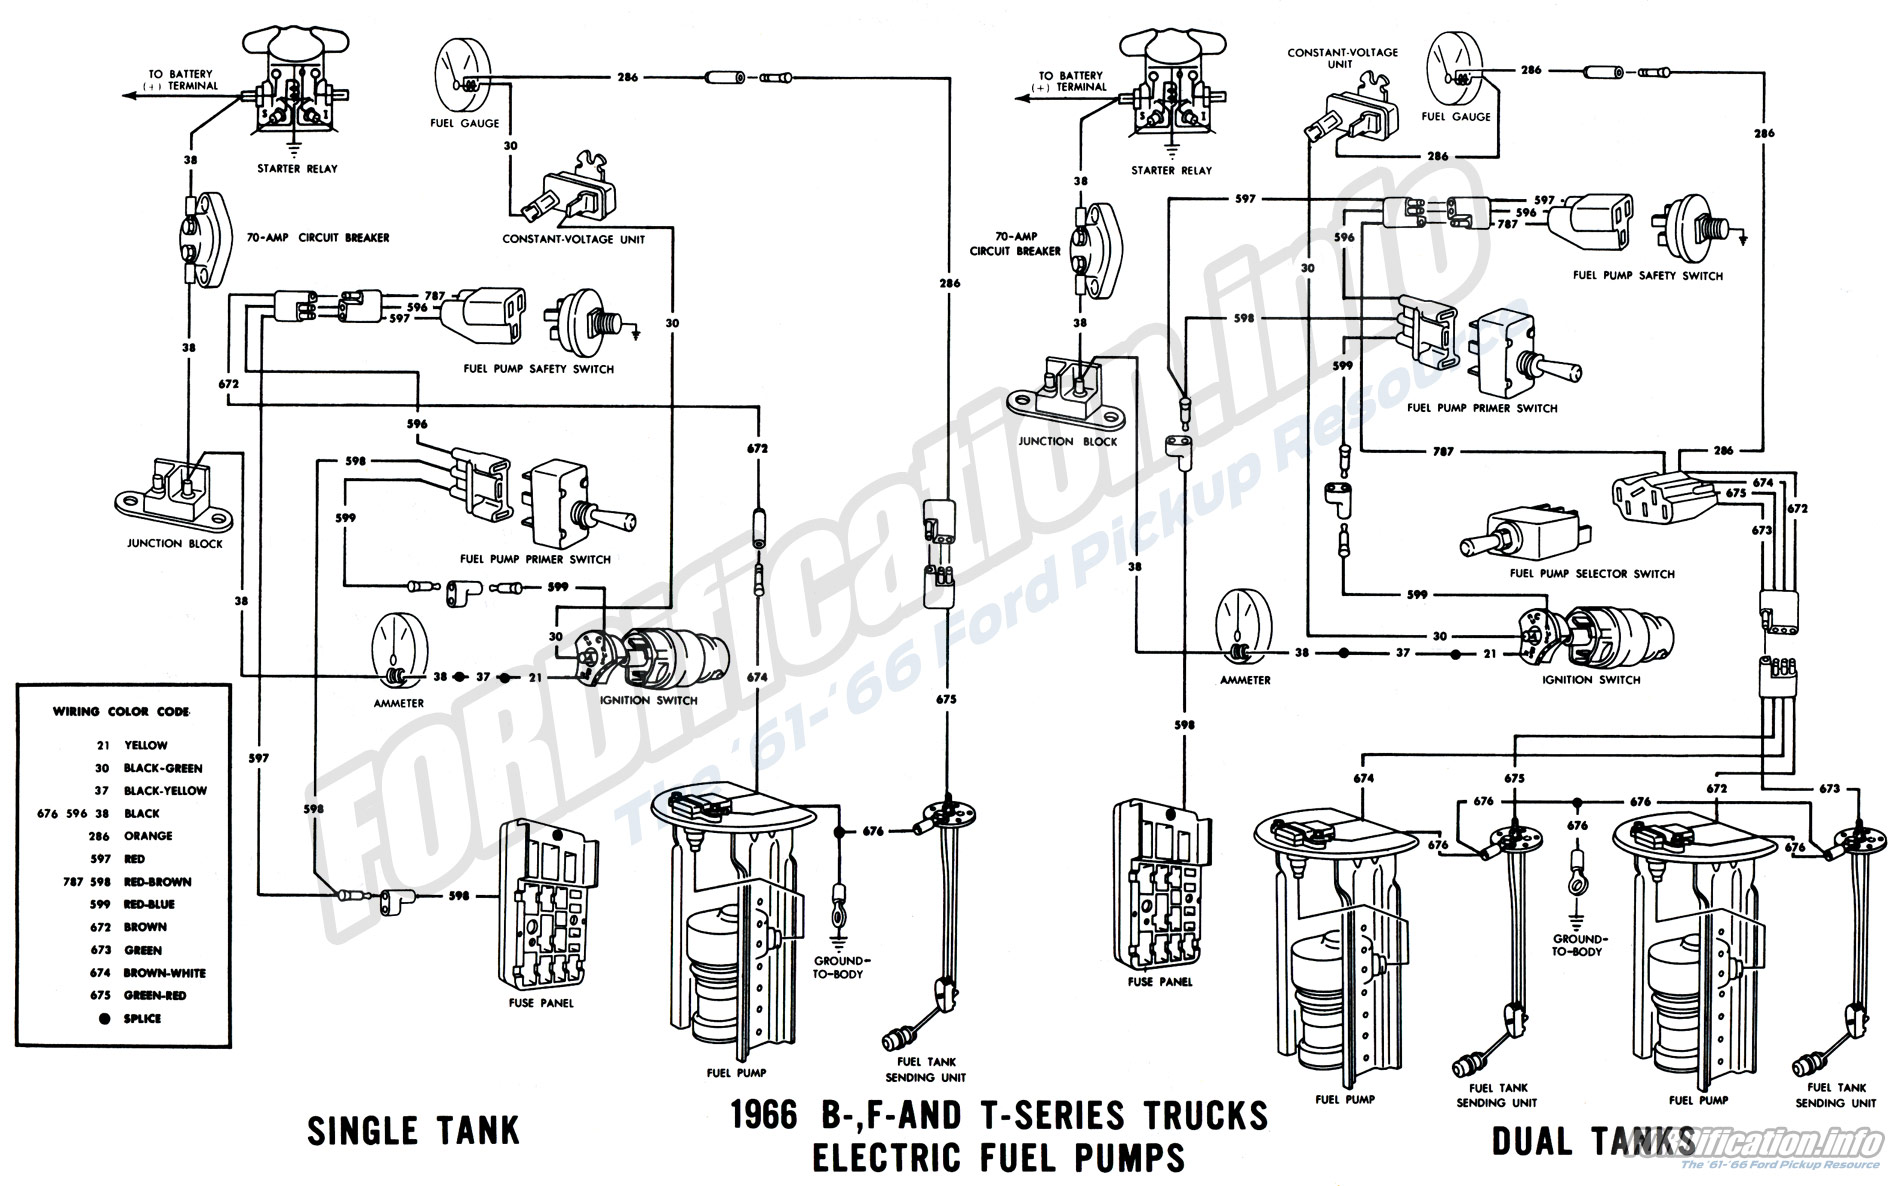 1959 ford f100 ignition wiring diagram